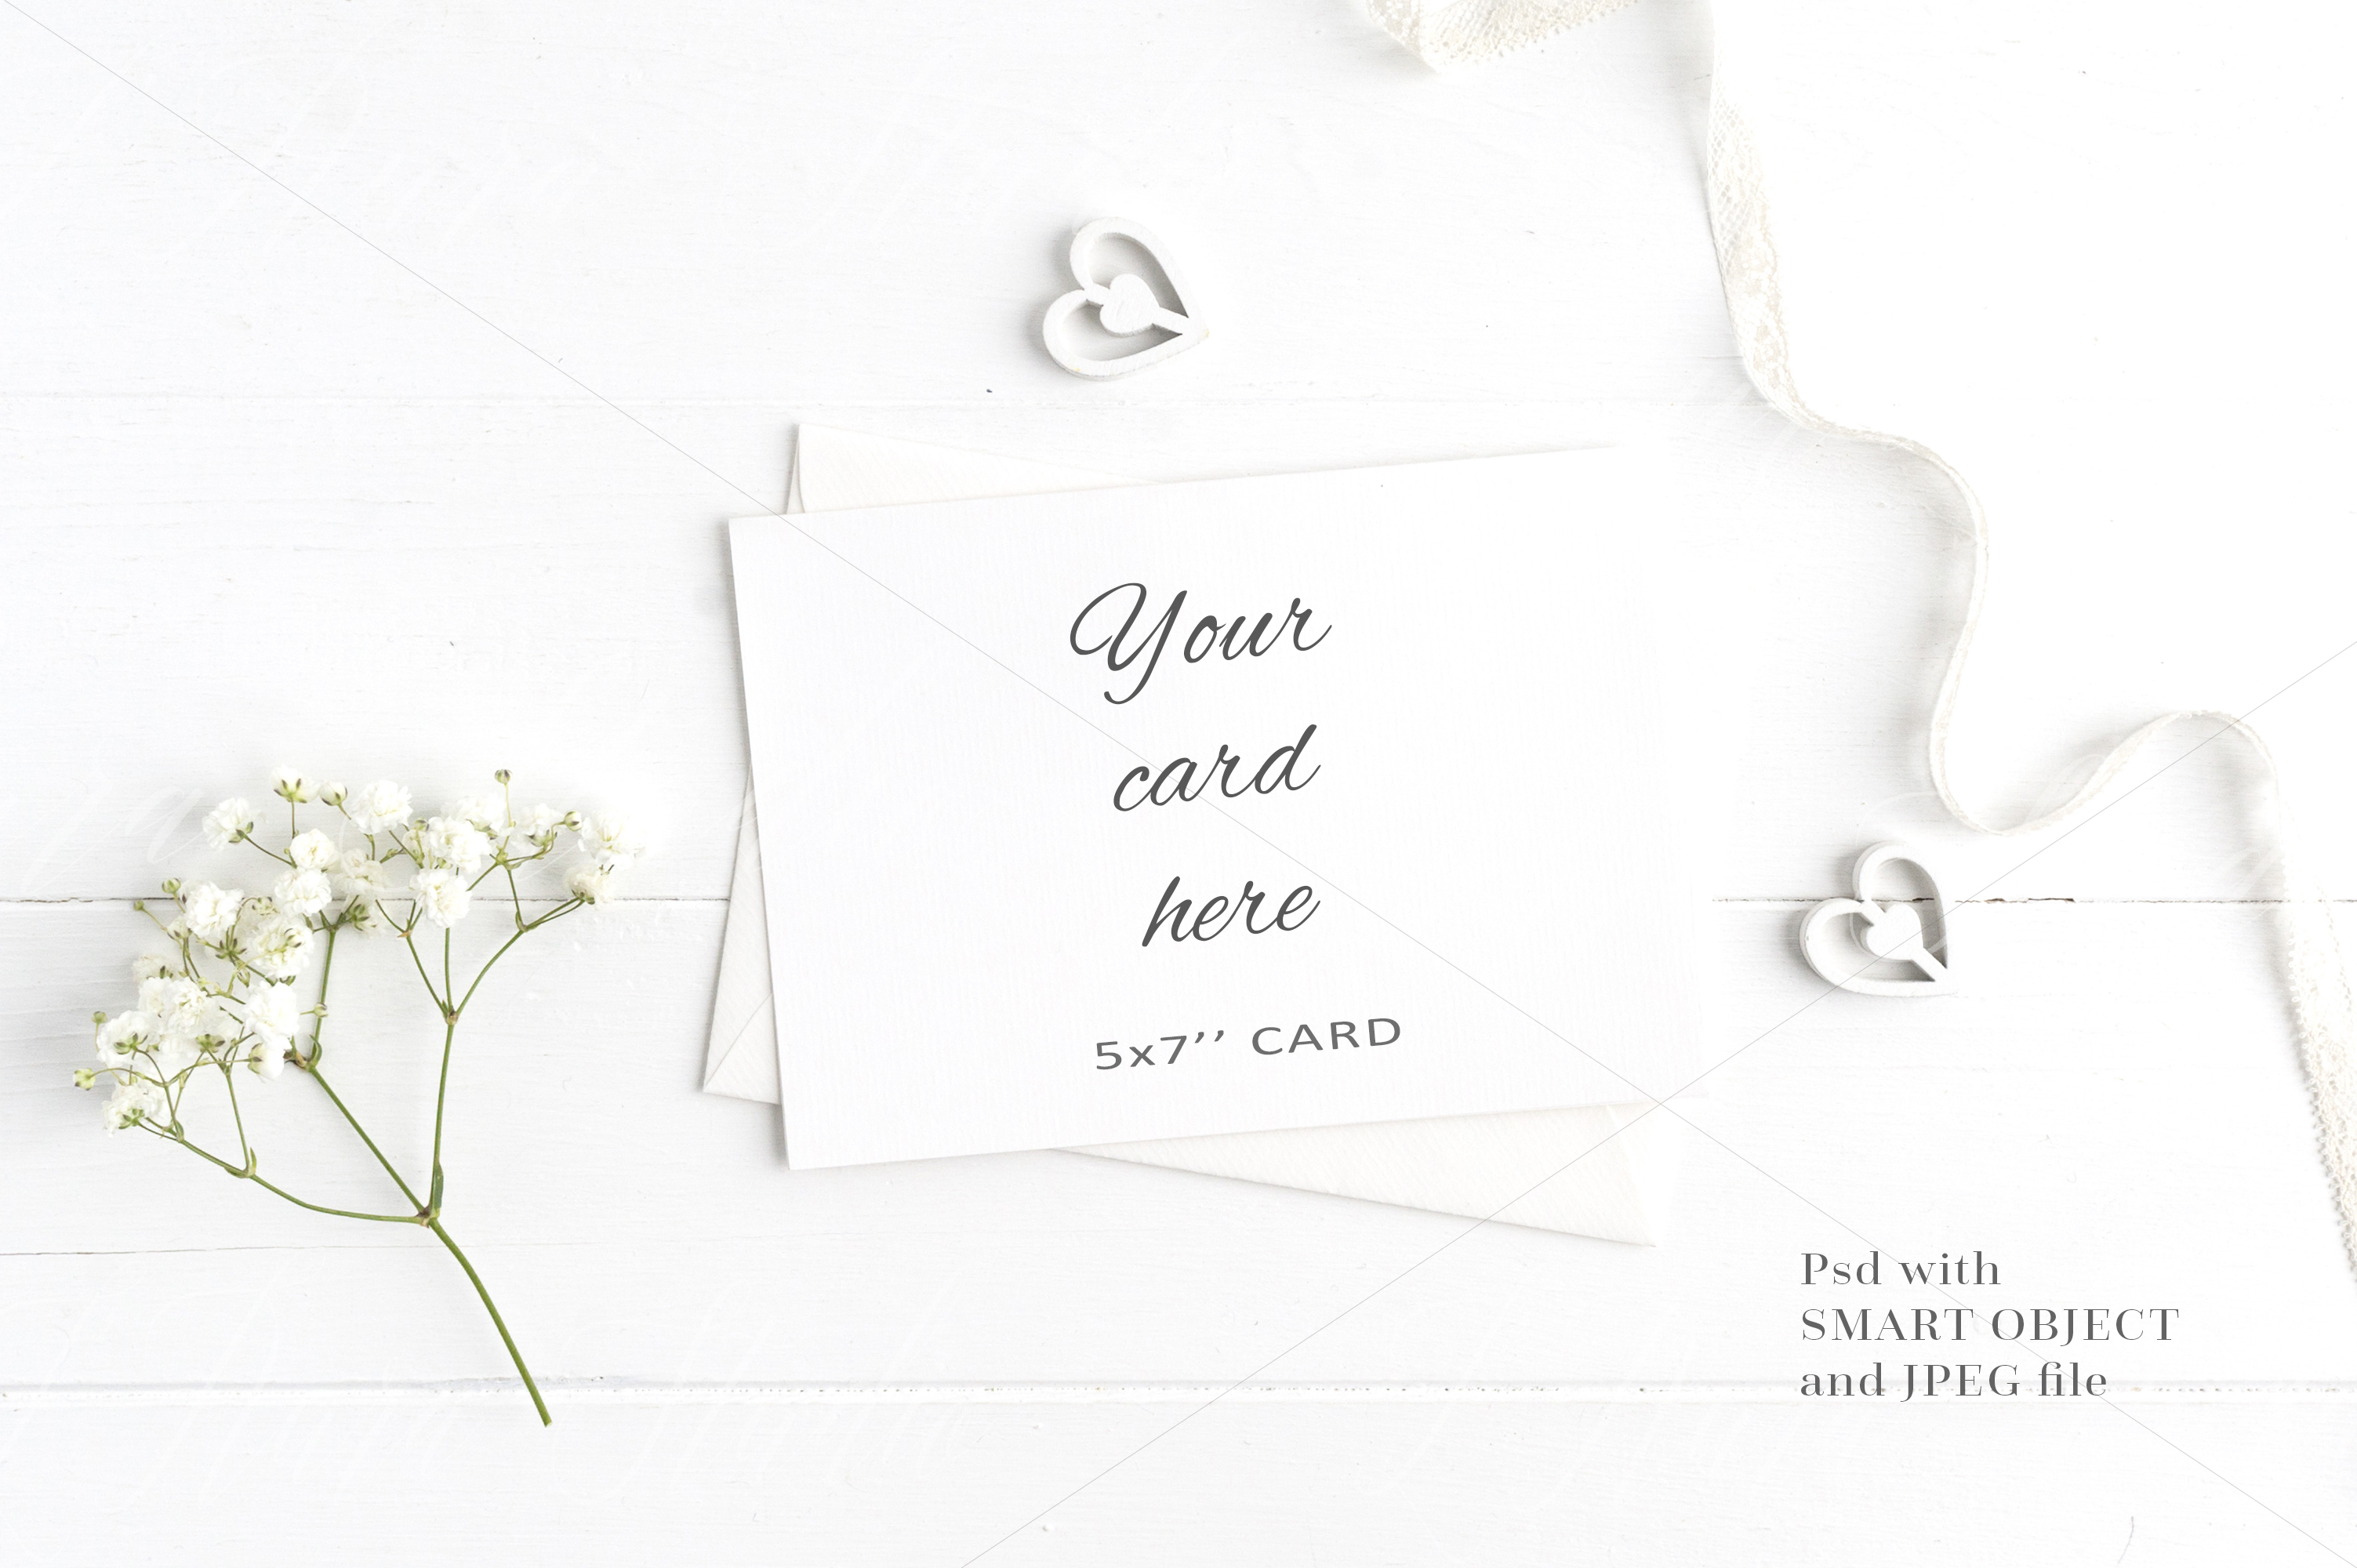 Floral 5x7 Card Mockup - crd213 example image 1